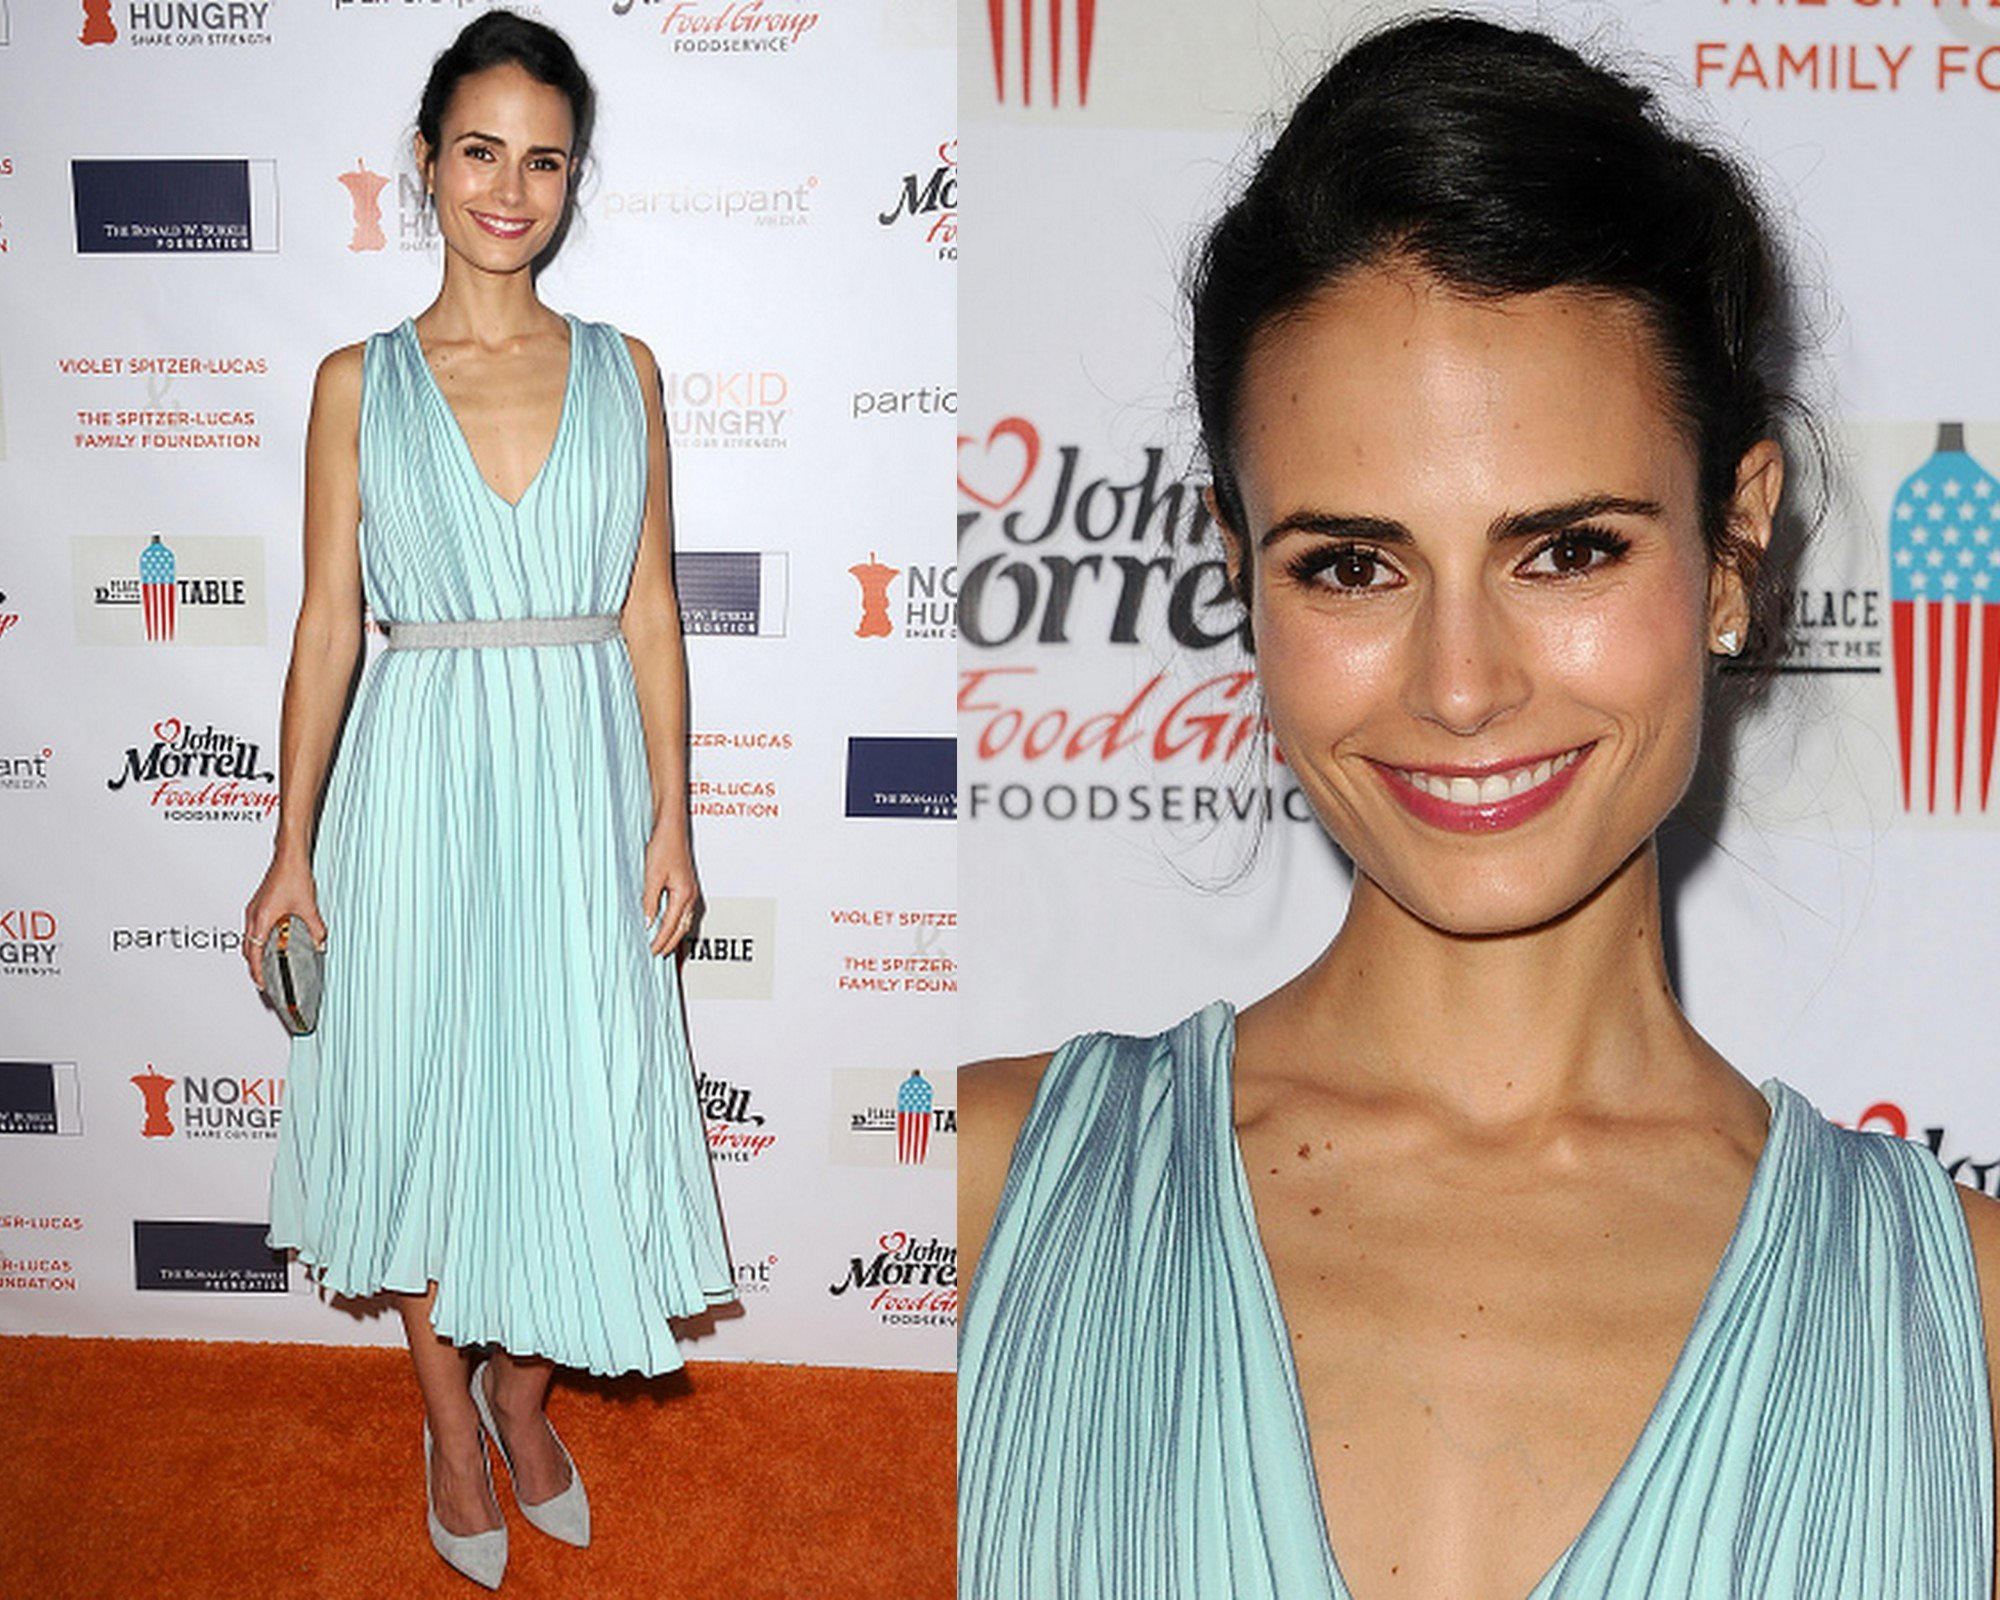 2000x1600xJordana Brewster Vionnet Share Our Strengths No Kid Hungry Campaign Fundraising Dinner e1414503419213.jpg.pagespeed.ic .9FAlbAXUfT Jordana Brewster  wears  Vionnet – No Kid Hungry Campaign Fundraising Dinner